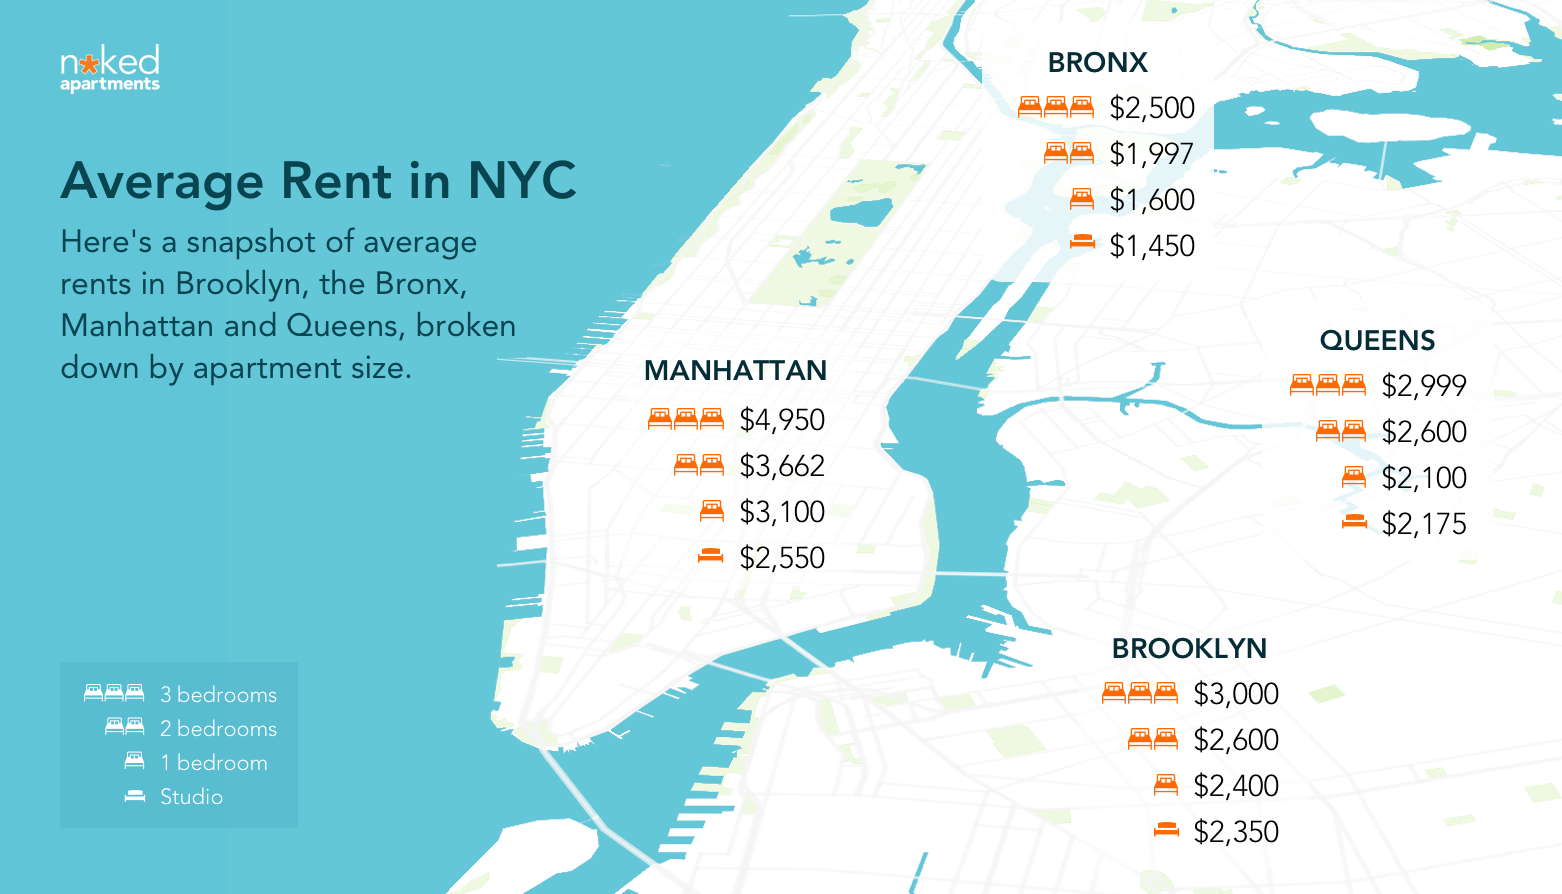 Average Rent For 1 Bedroom Apartment In New York City In 2020 Rent In Nyc Apartment Cost Bedroom Apartment